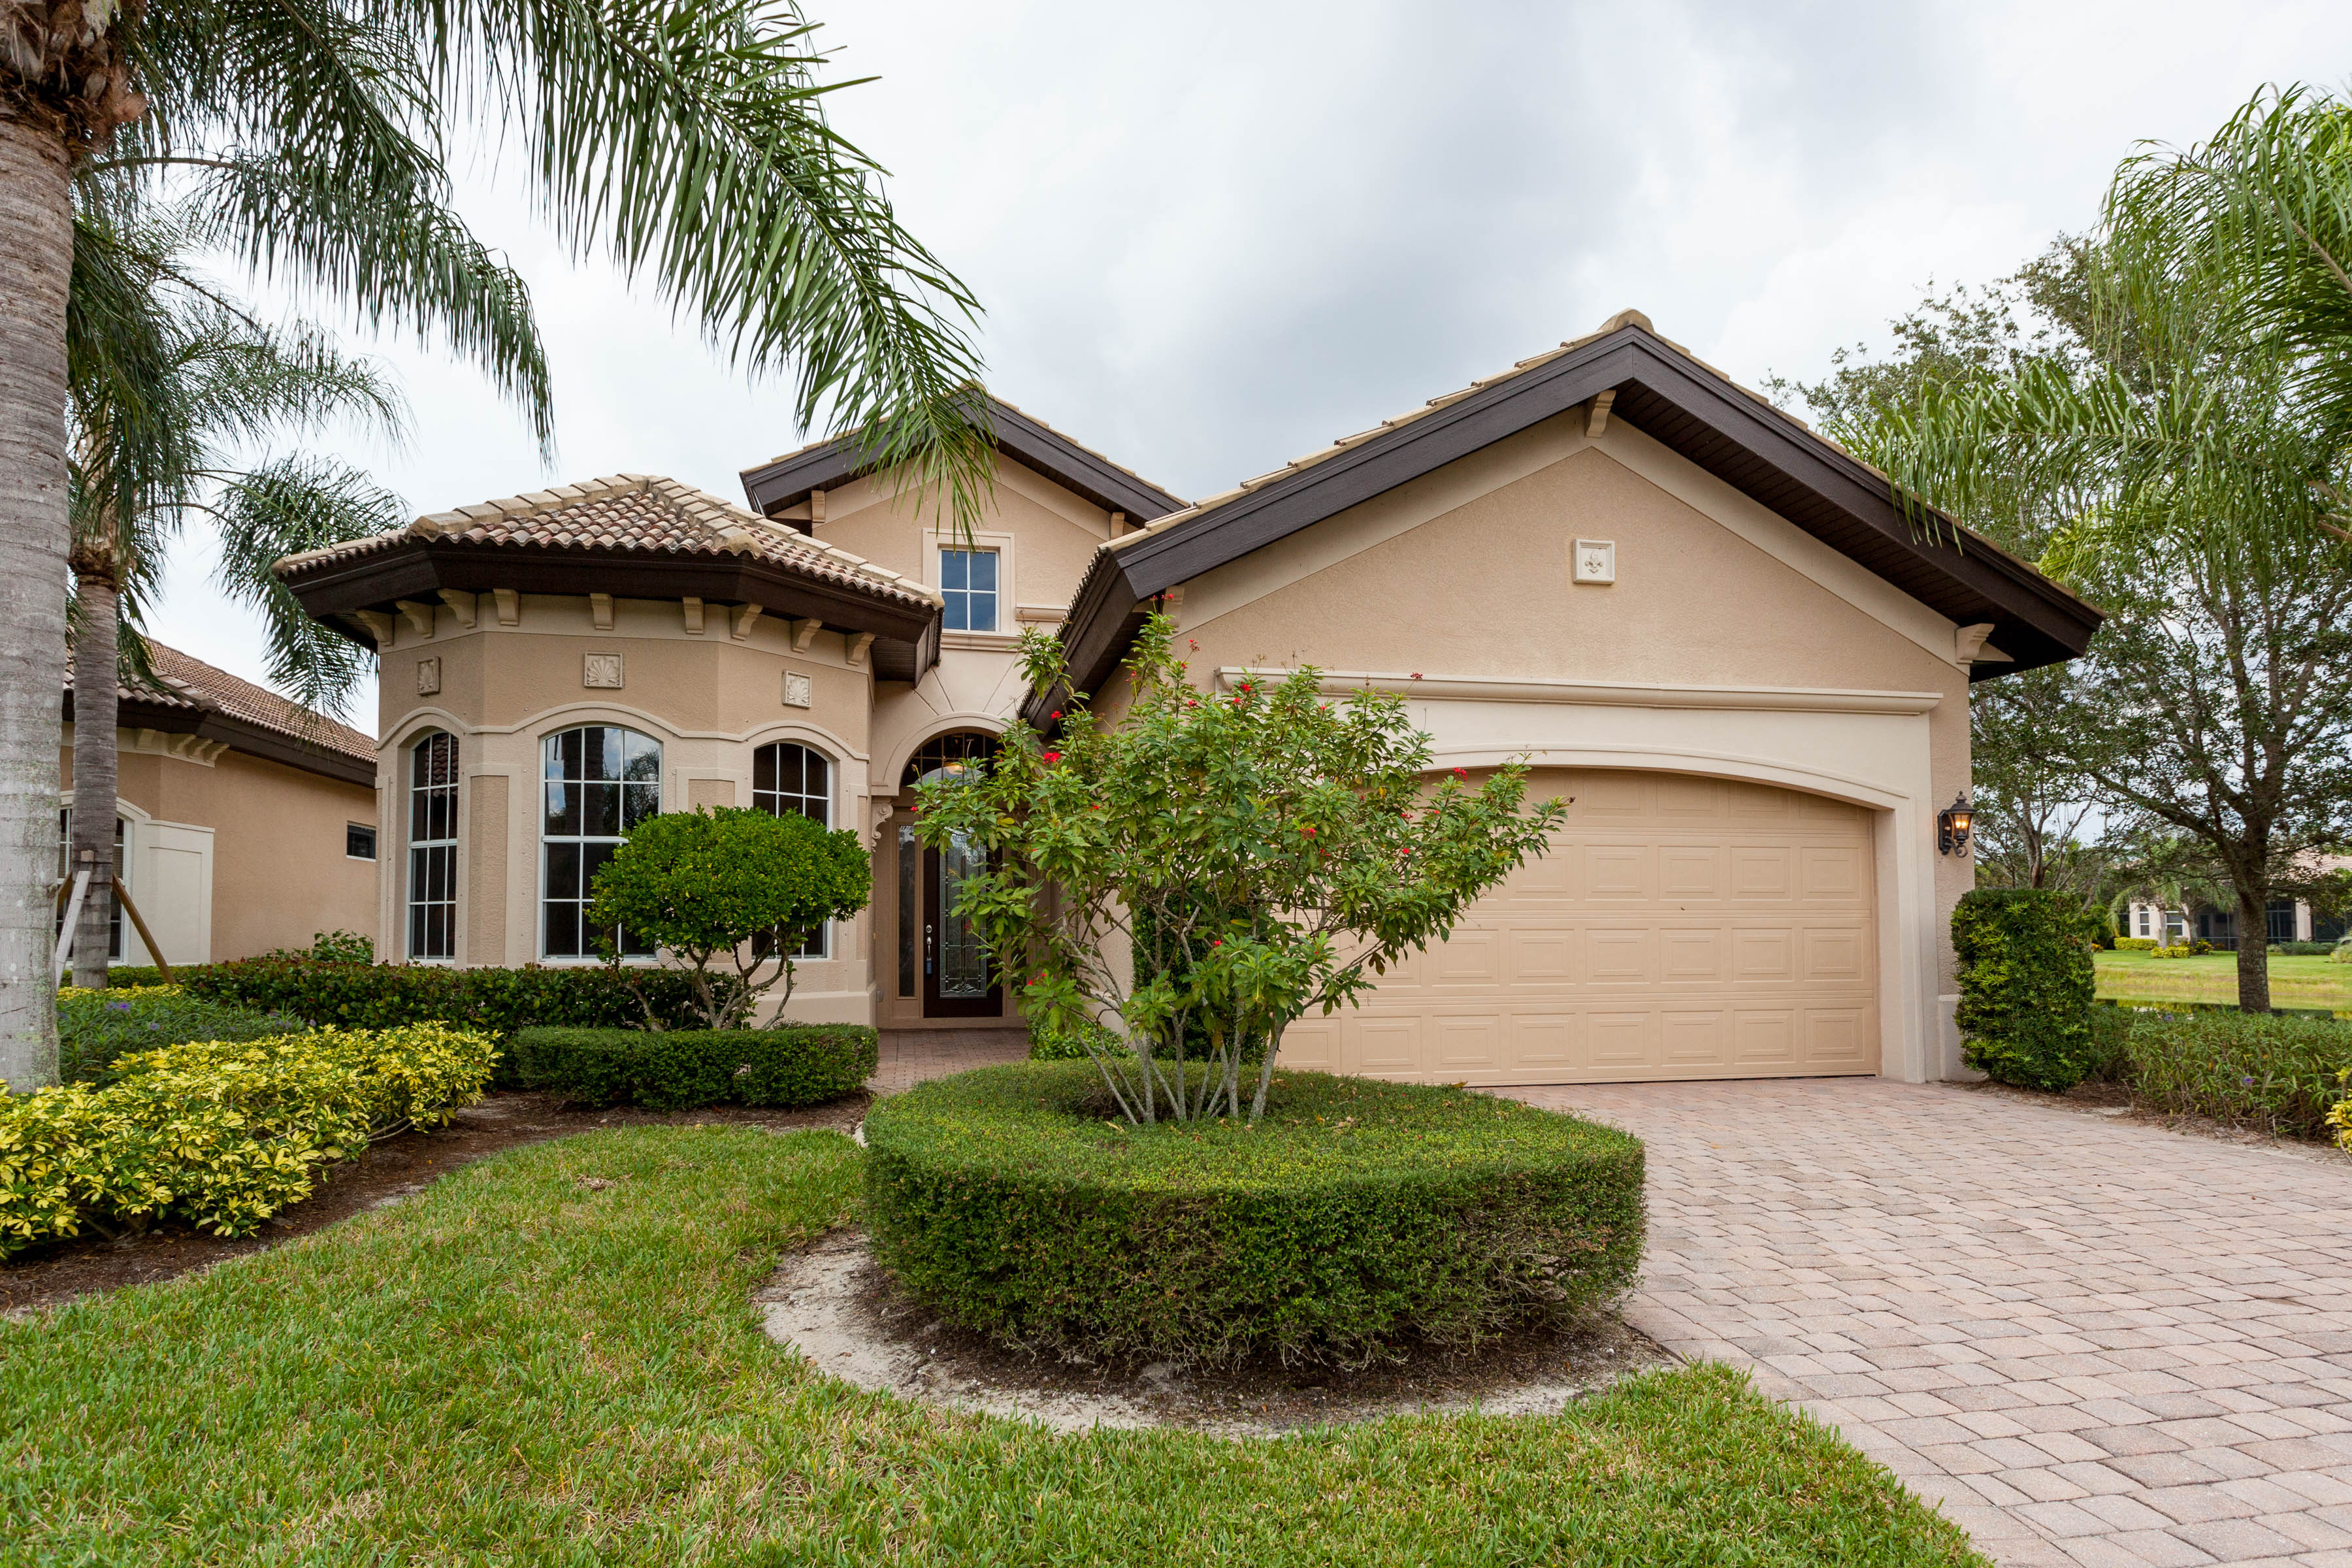 House of the Week: Estero, FL